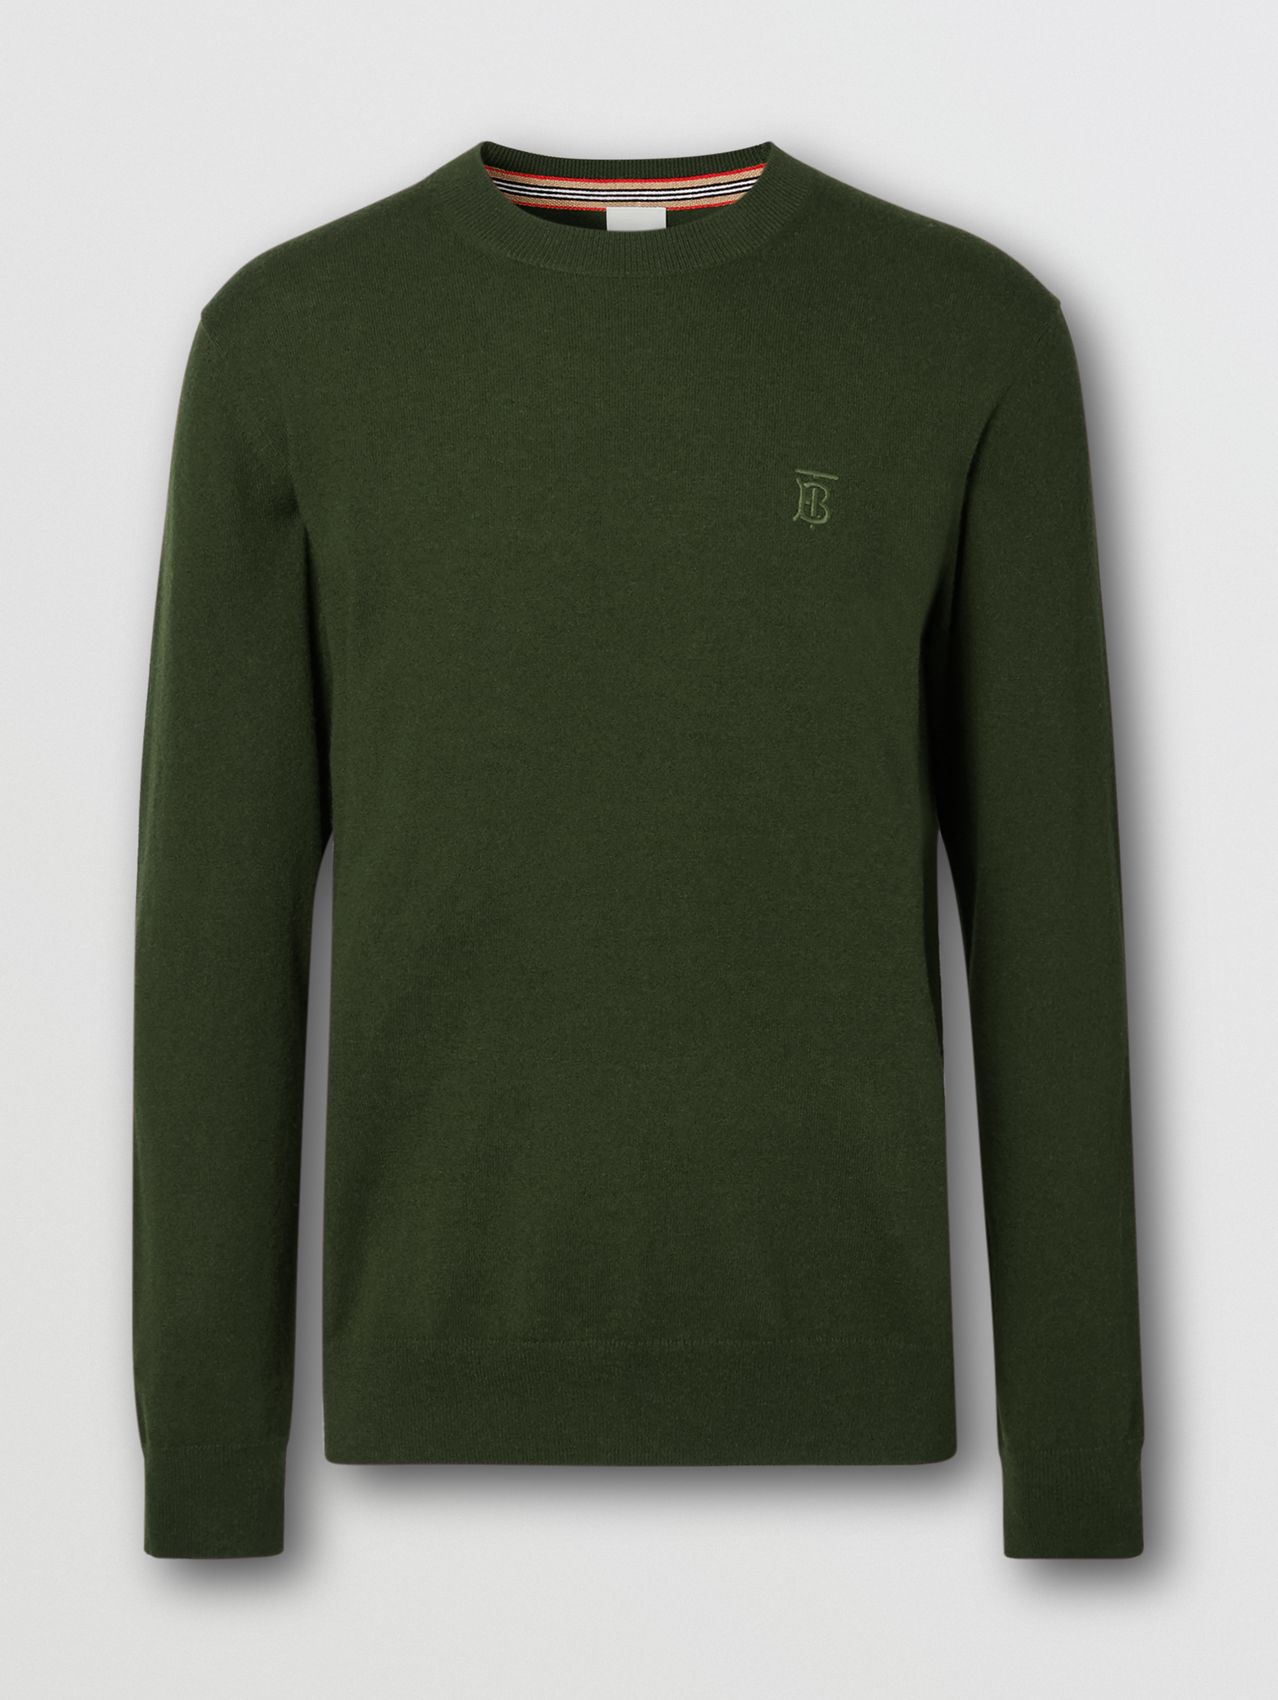 Monogram Motif Cashmere Sweater in Deep Khaki